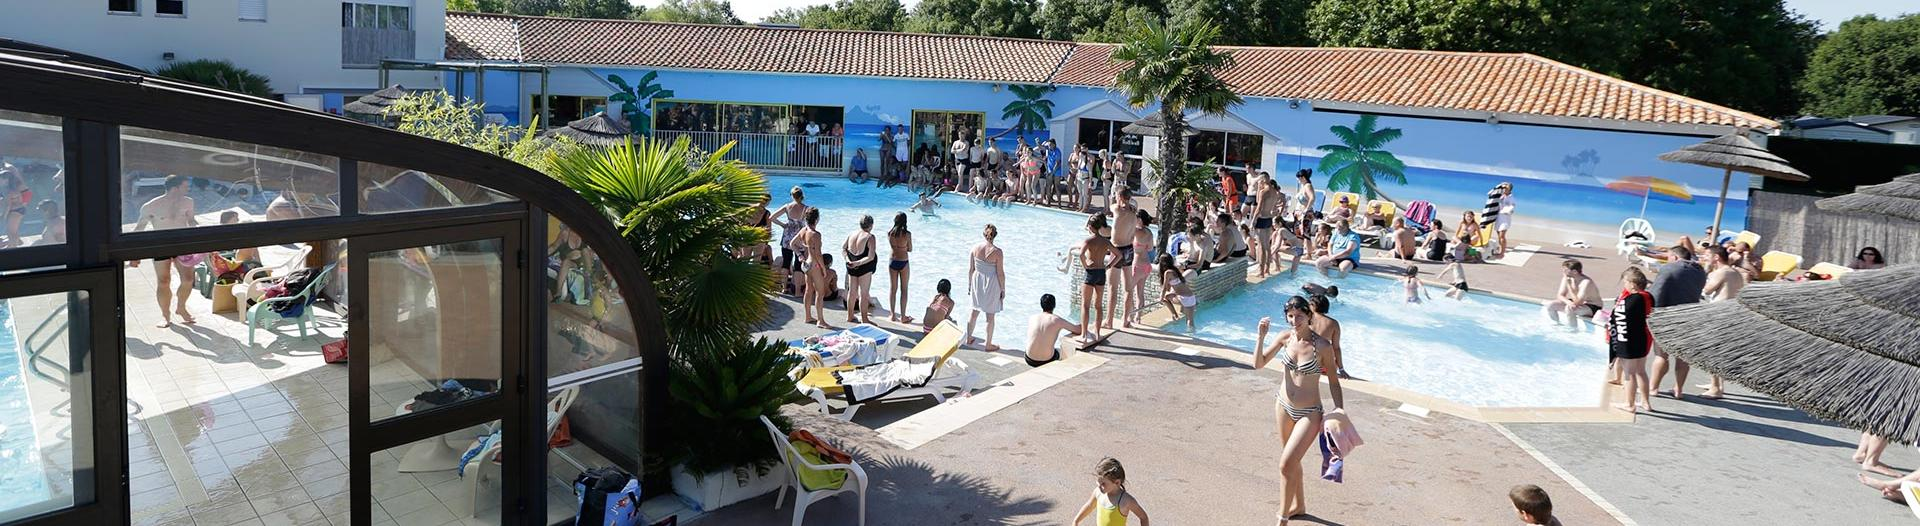 slider-camping-oleron-loisirs-charente-maritime-piscine-couverte